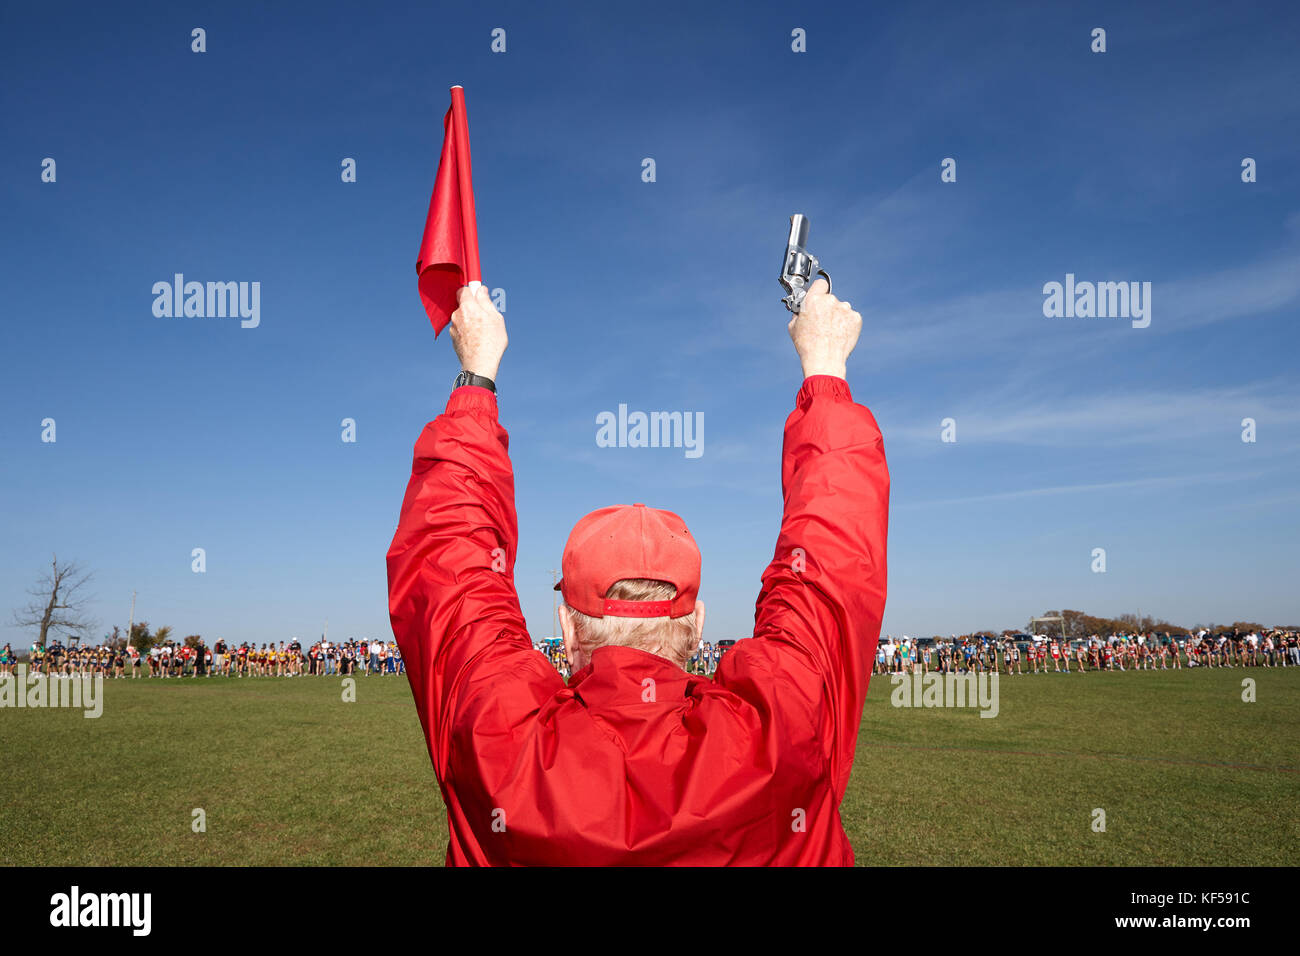 Man dressed all in red standing with his back to the camera facing a field of competitors holding up a starter gun - Stock Image